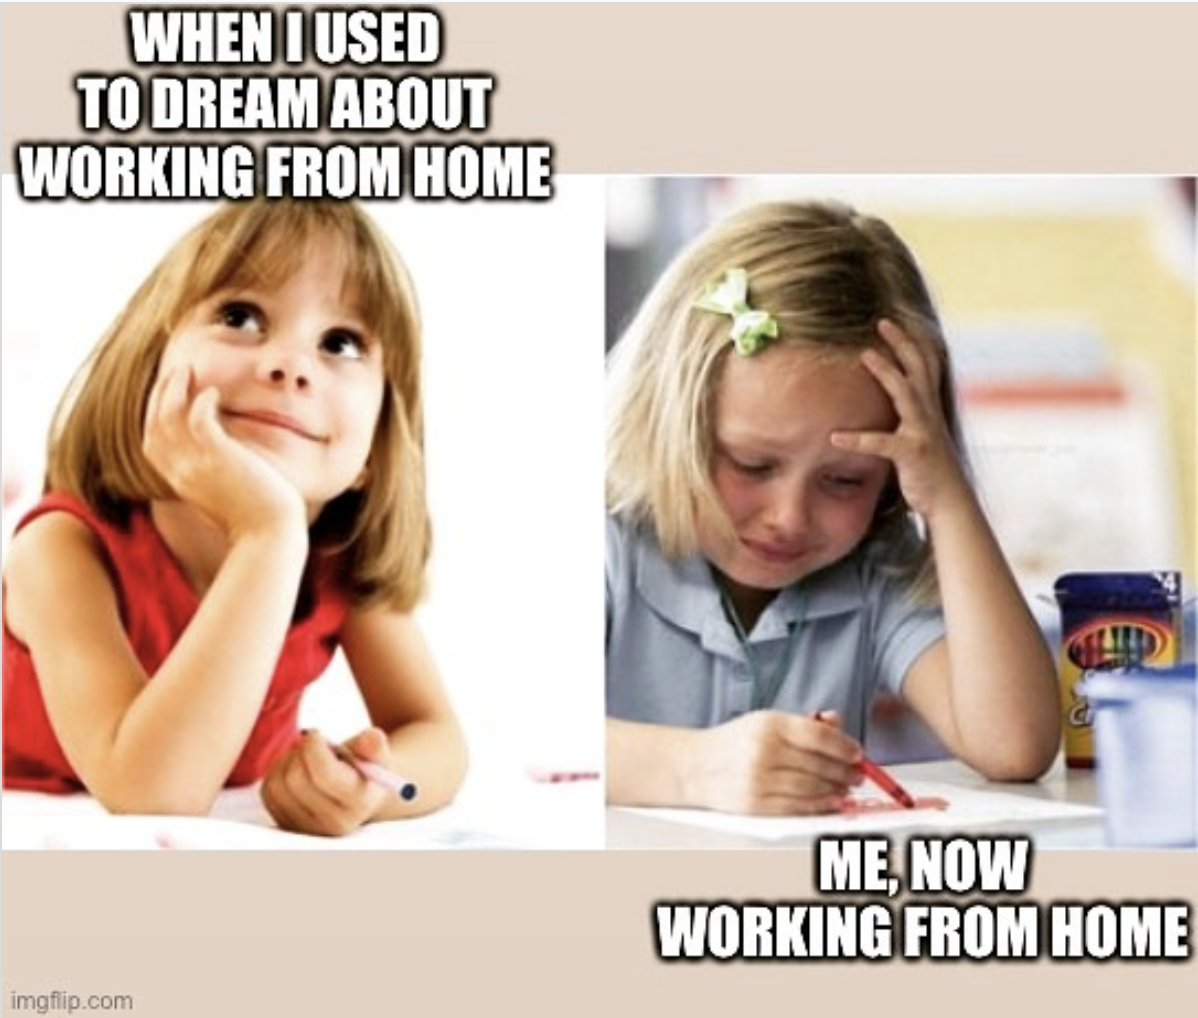 working from home dreaming vs reality